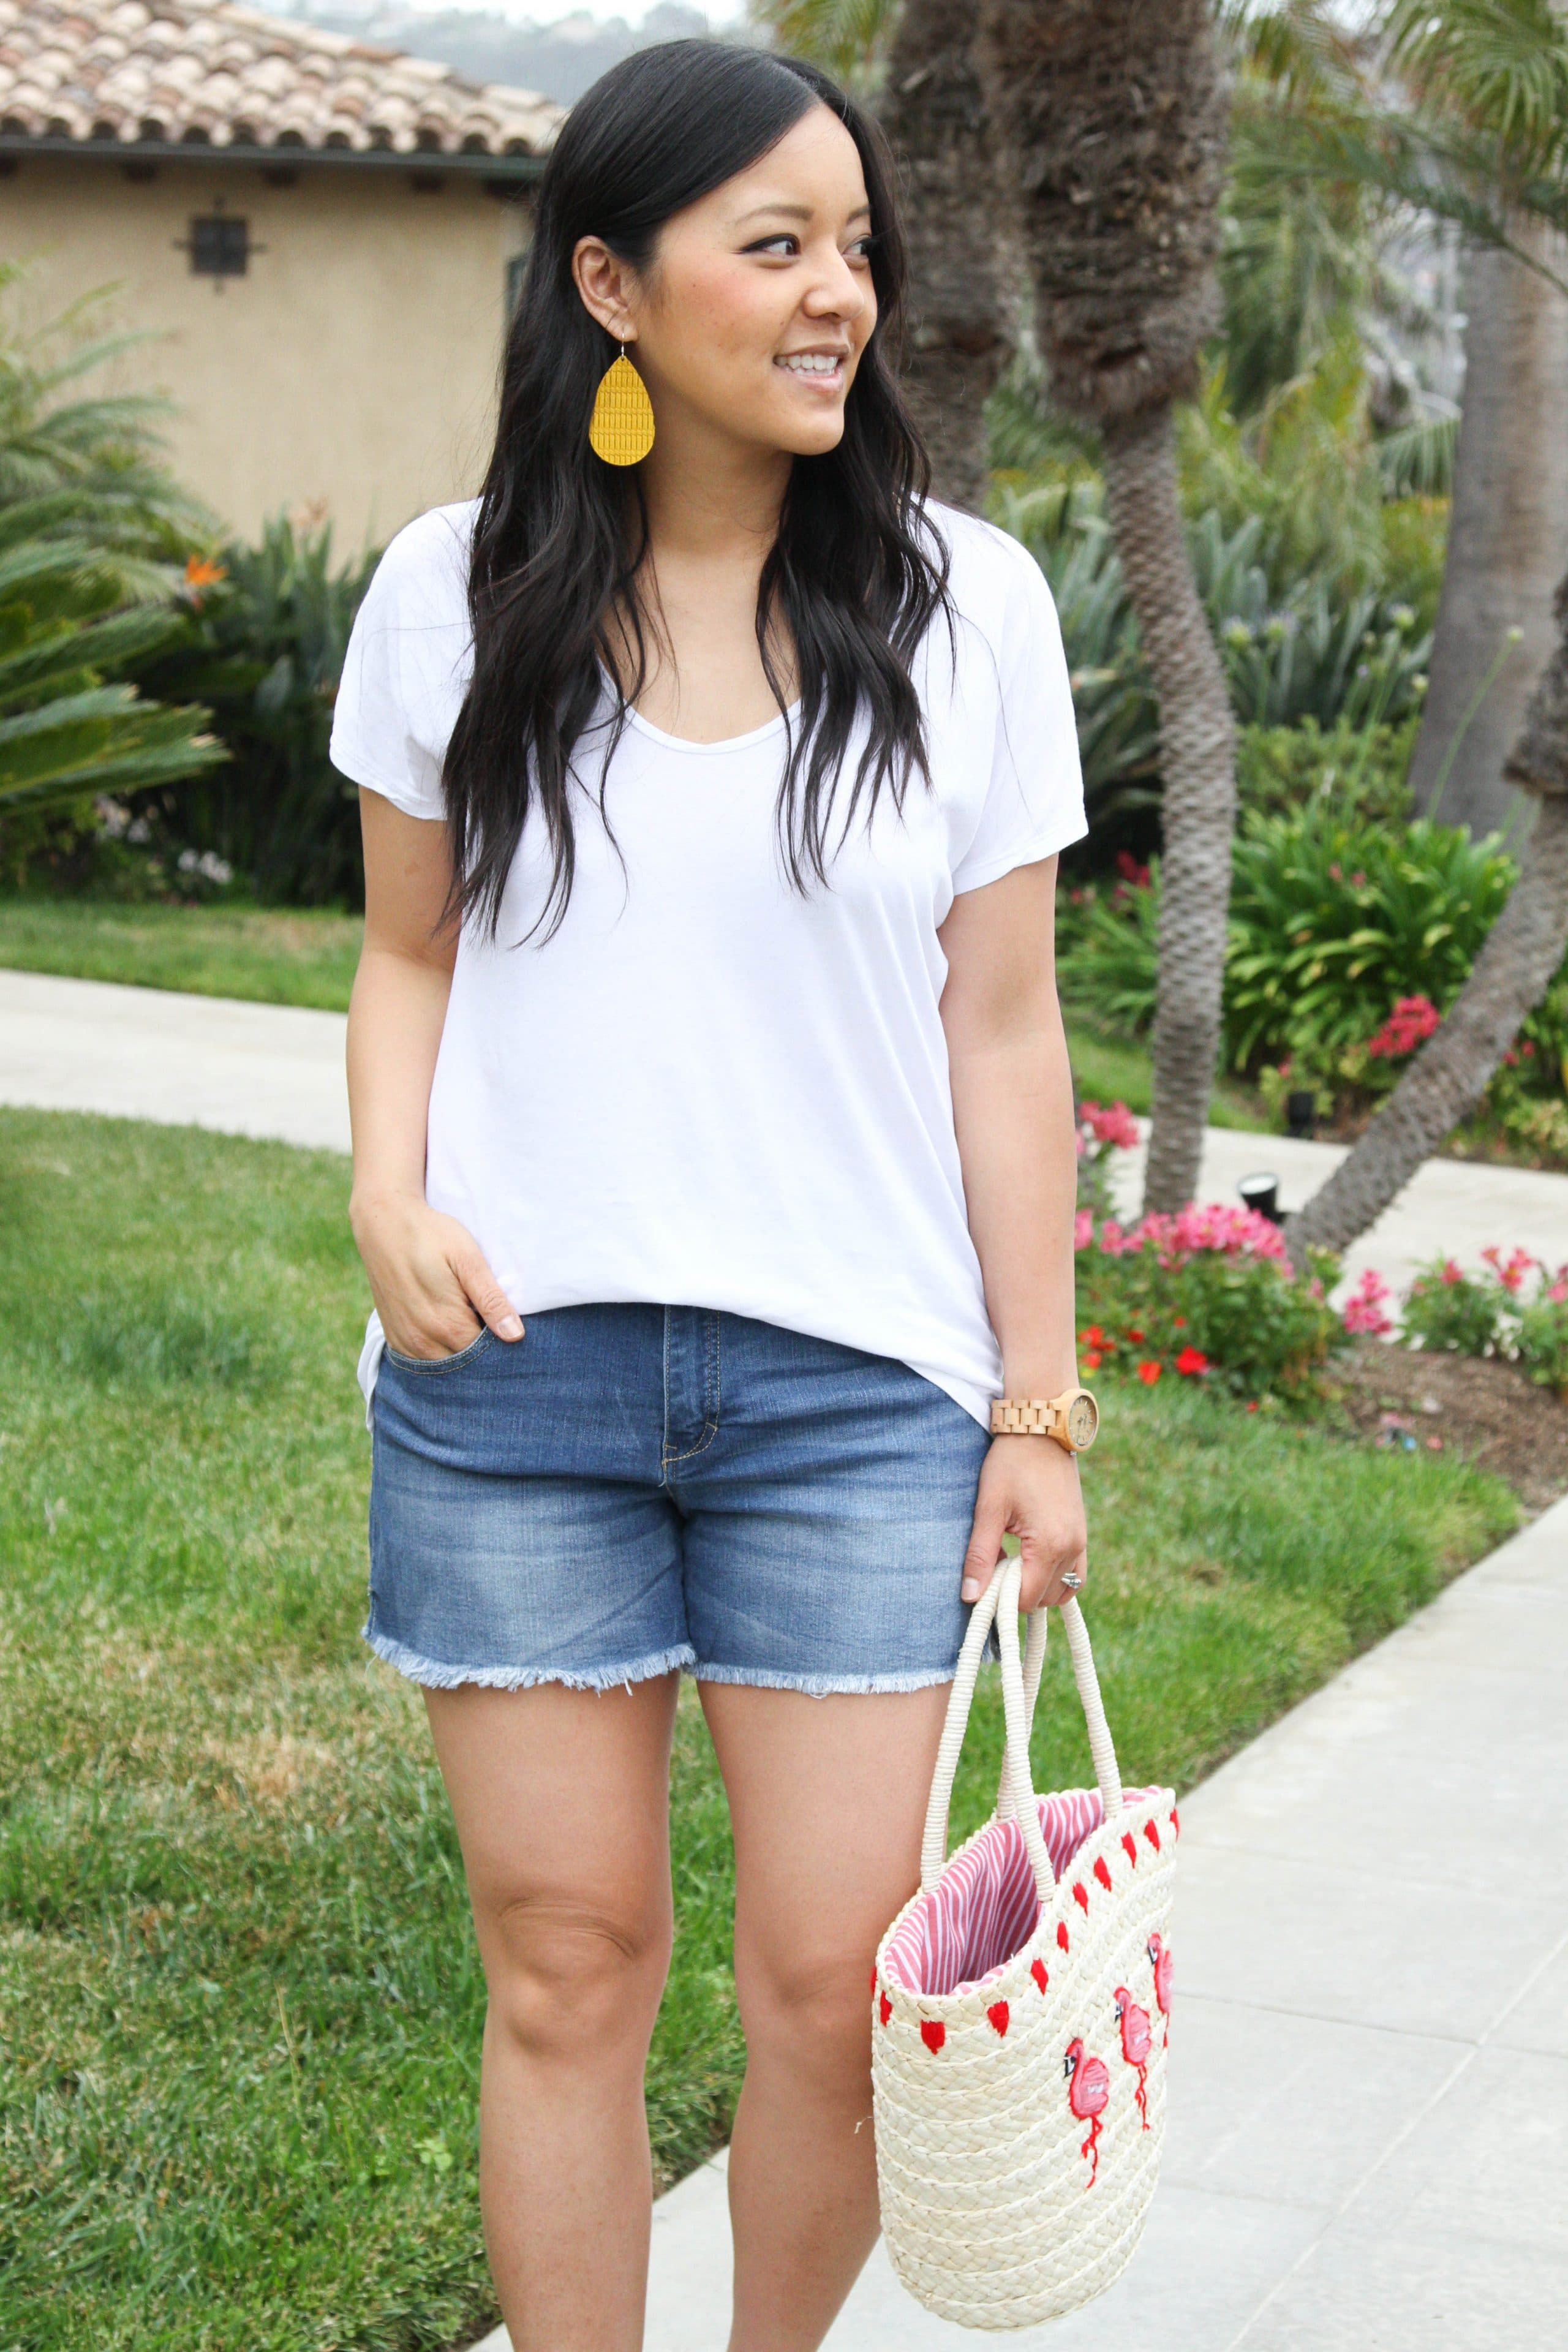 White Tee + Jean Shorts + Straw Tote + Statement Earrings